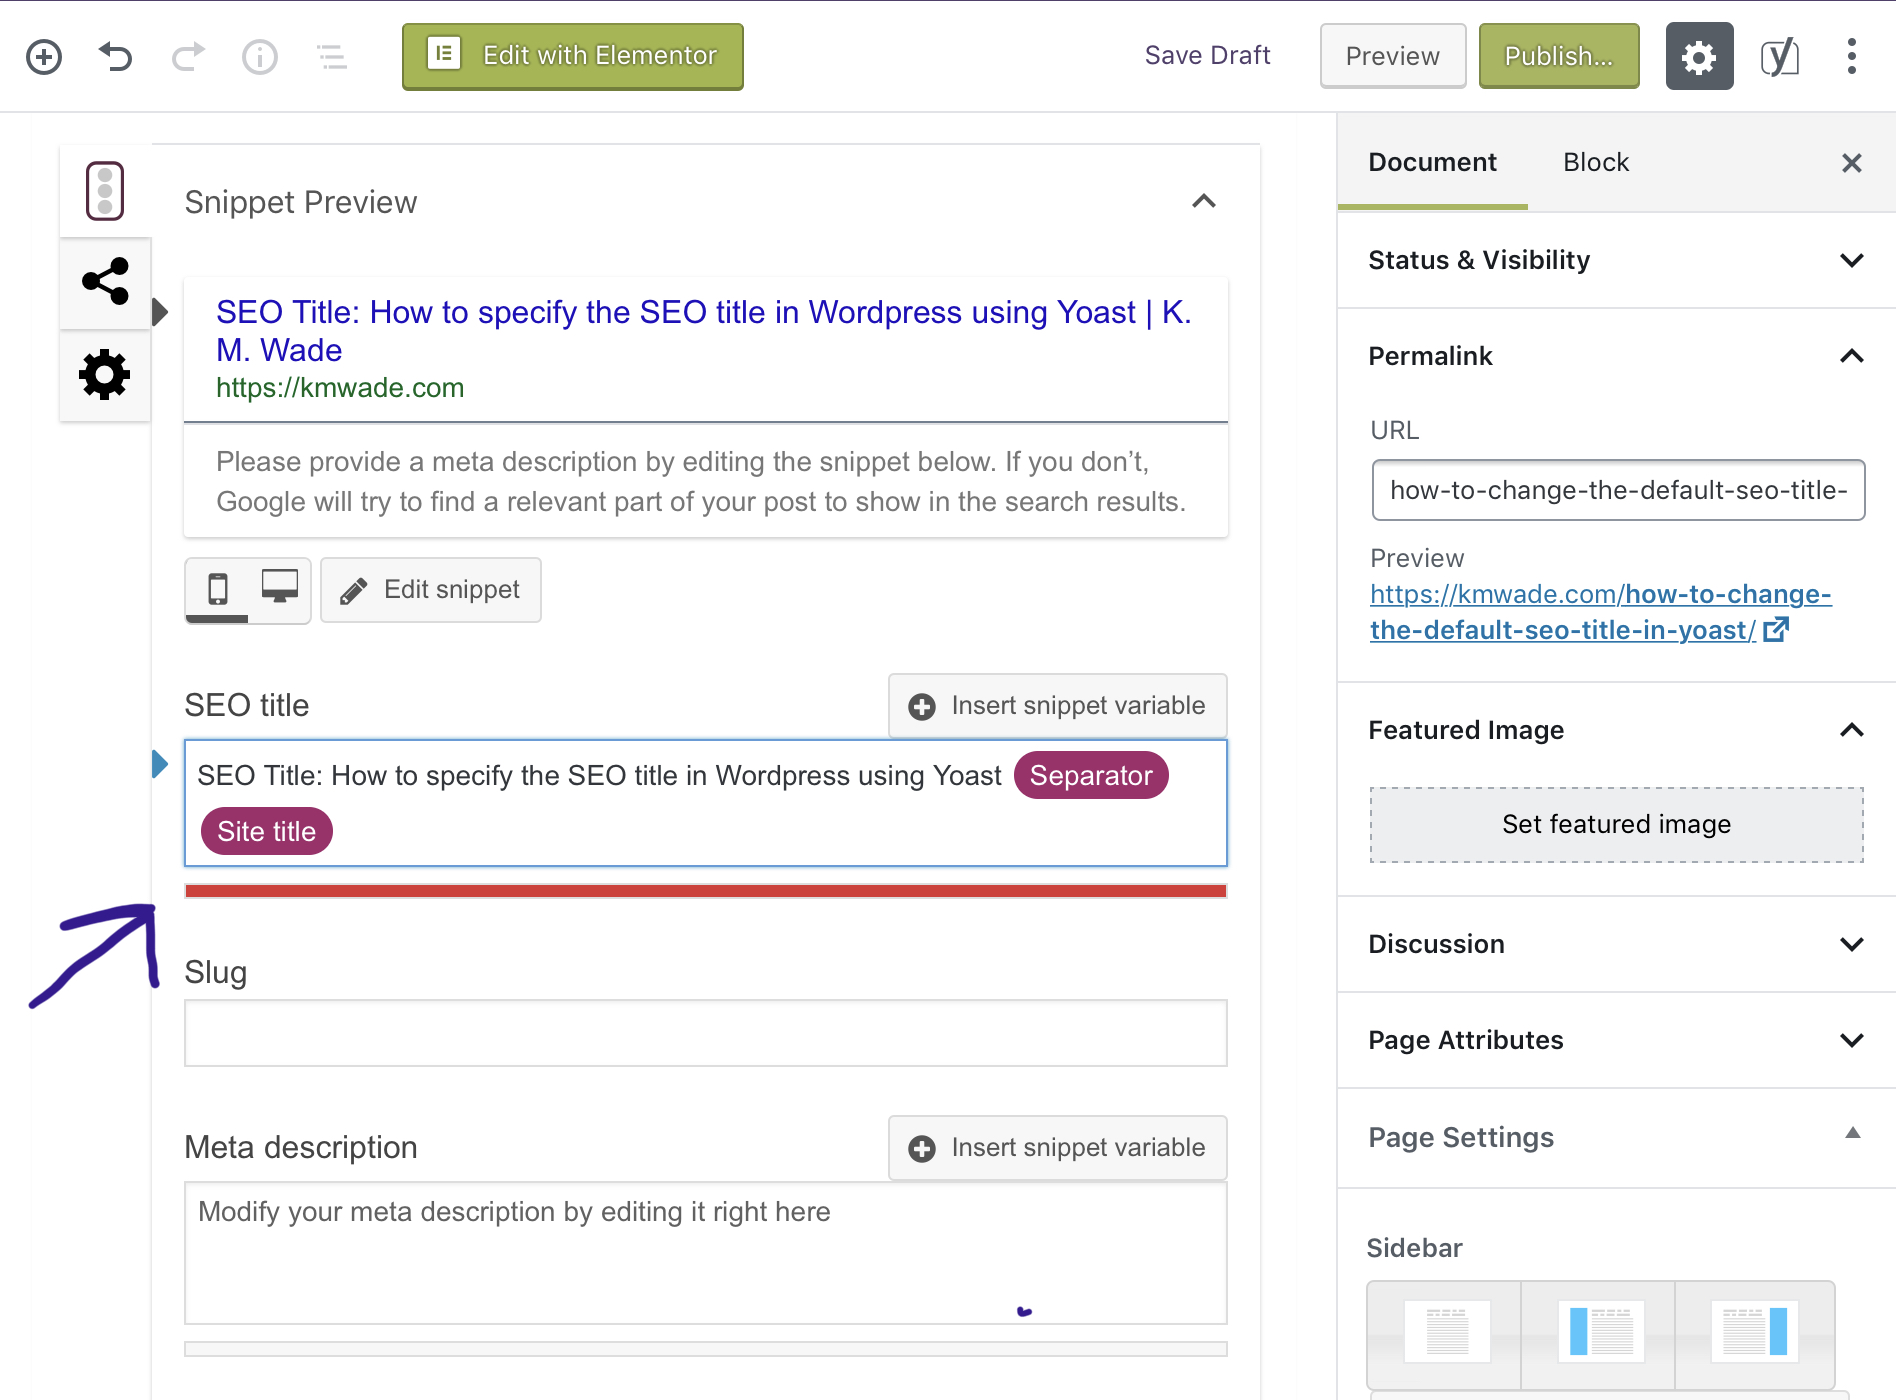 A screenshot showing how to edit the default SEO title in Yoast SEO